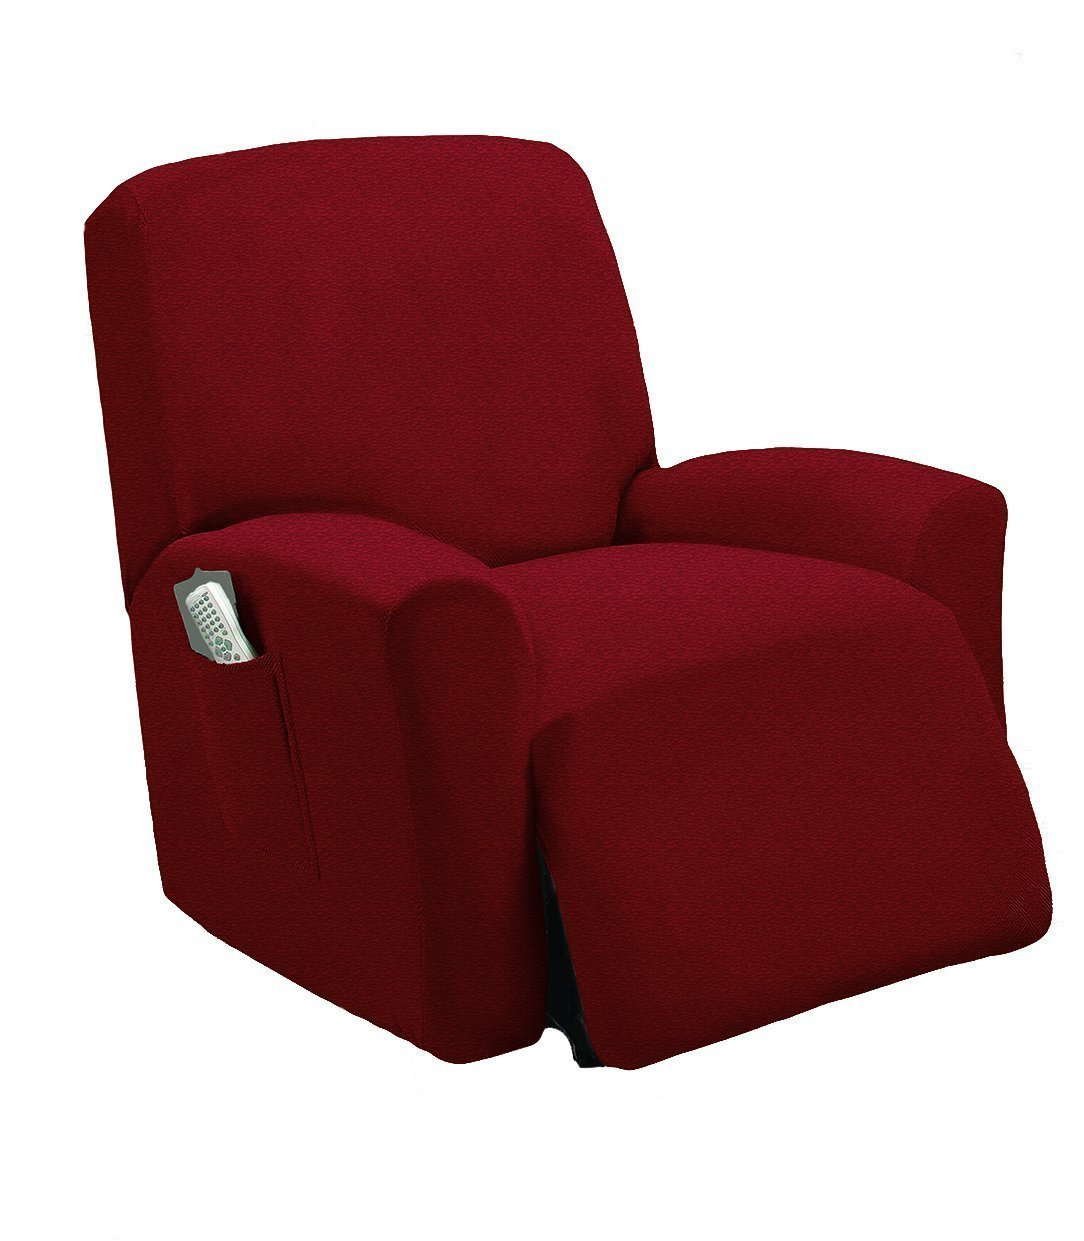 Elegant Home One piece Stretch Sterling Recliner Chair Cover Furniture Slipcovers with Remote Pocket Fit most Recliner Chairs # Stella (Burgundy)